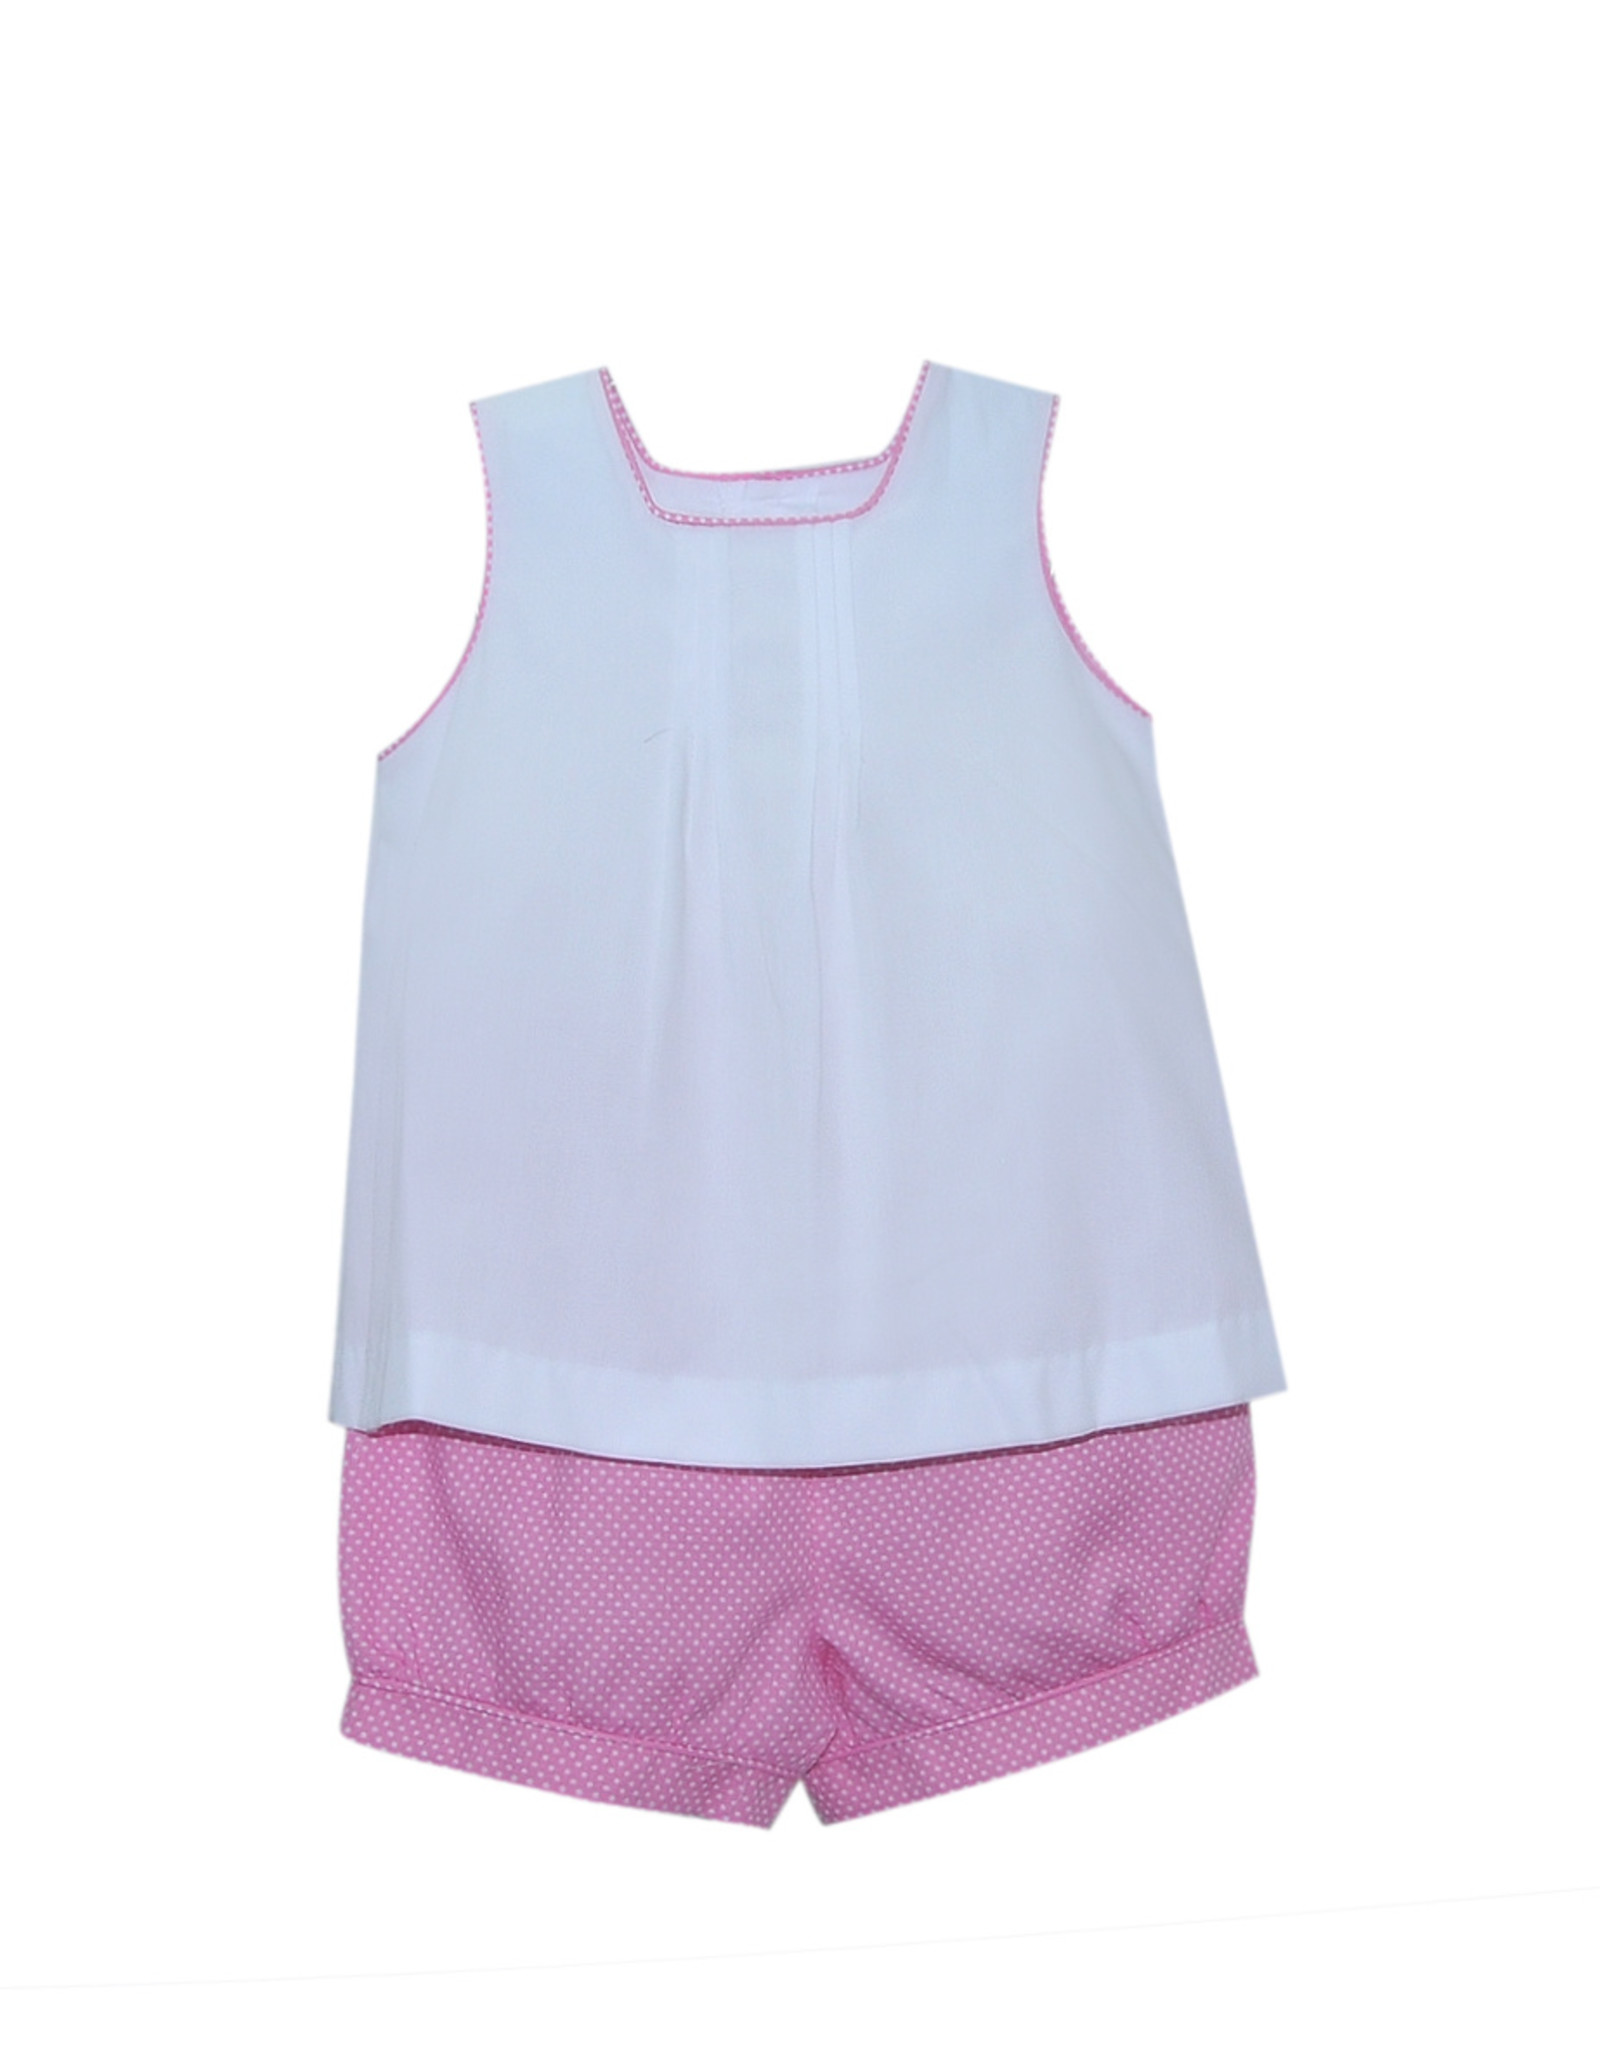 LullabySet Ellery White Top With Pink Shorts